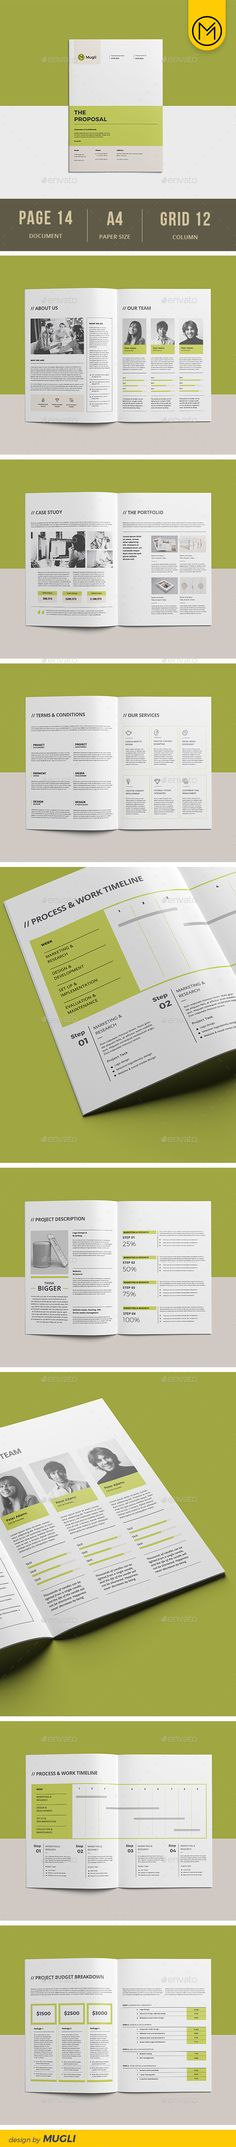 Business Proposal Template  Us Letter Landscape  Design Haven